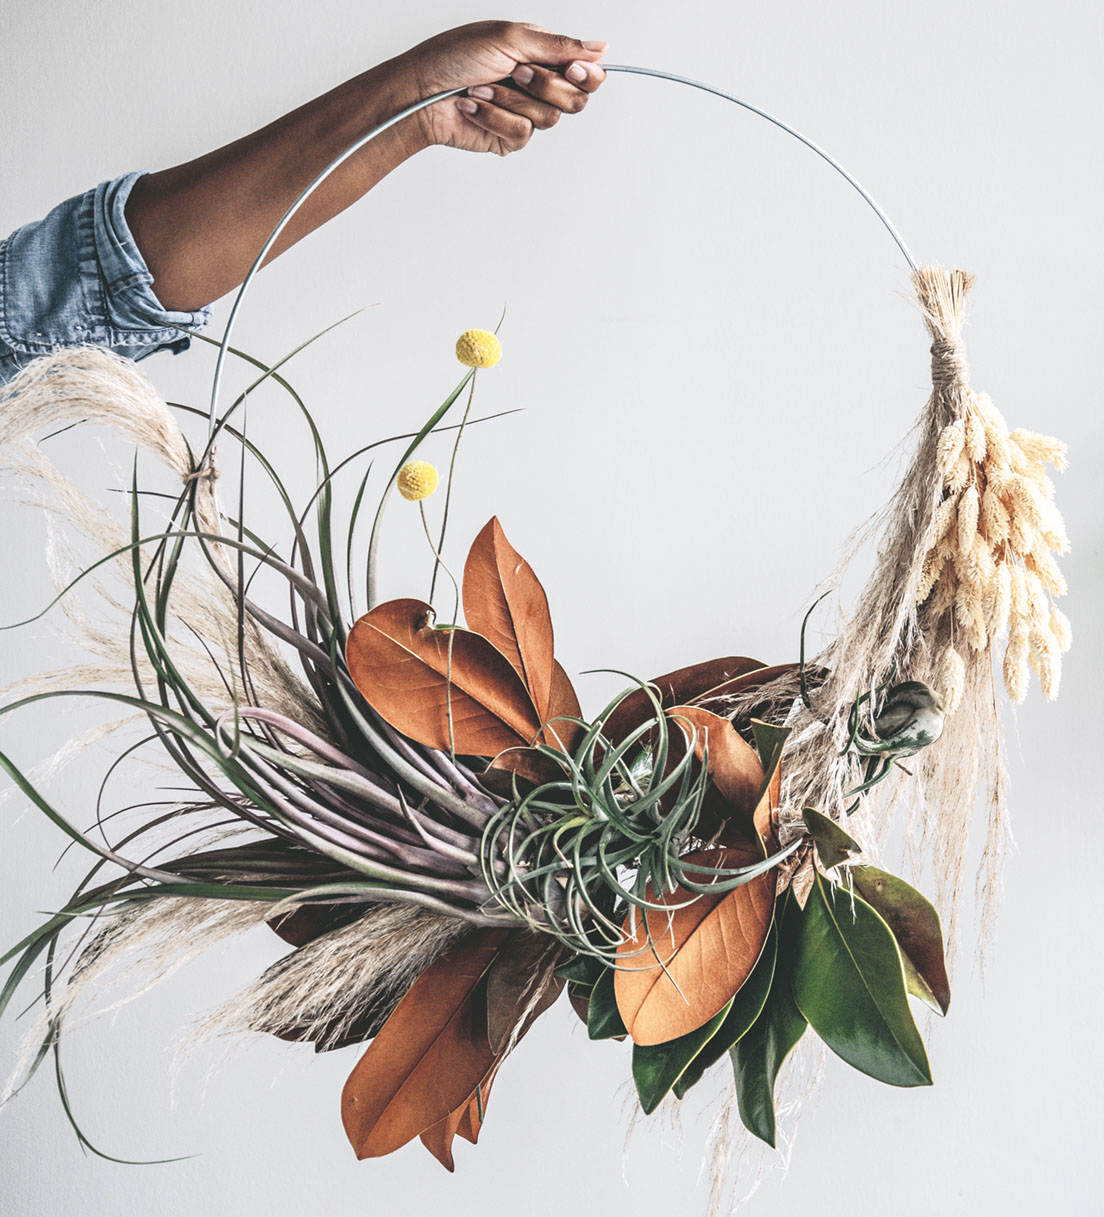 Hilton Carter's air plant wreath with magnolia foliage, pampas grass, bunny tails, and yellow billy balls